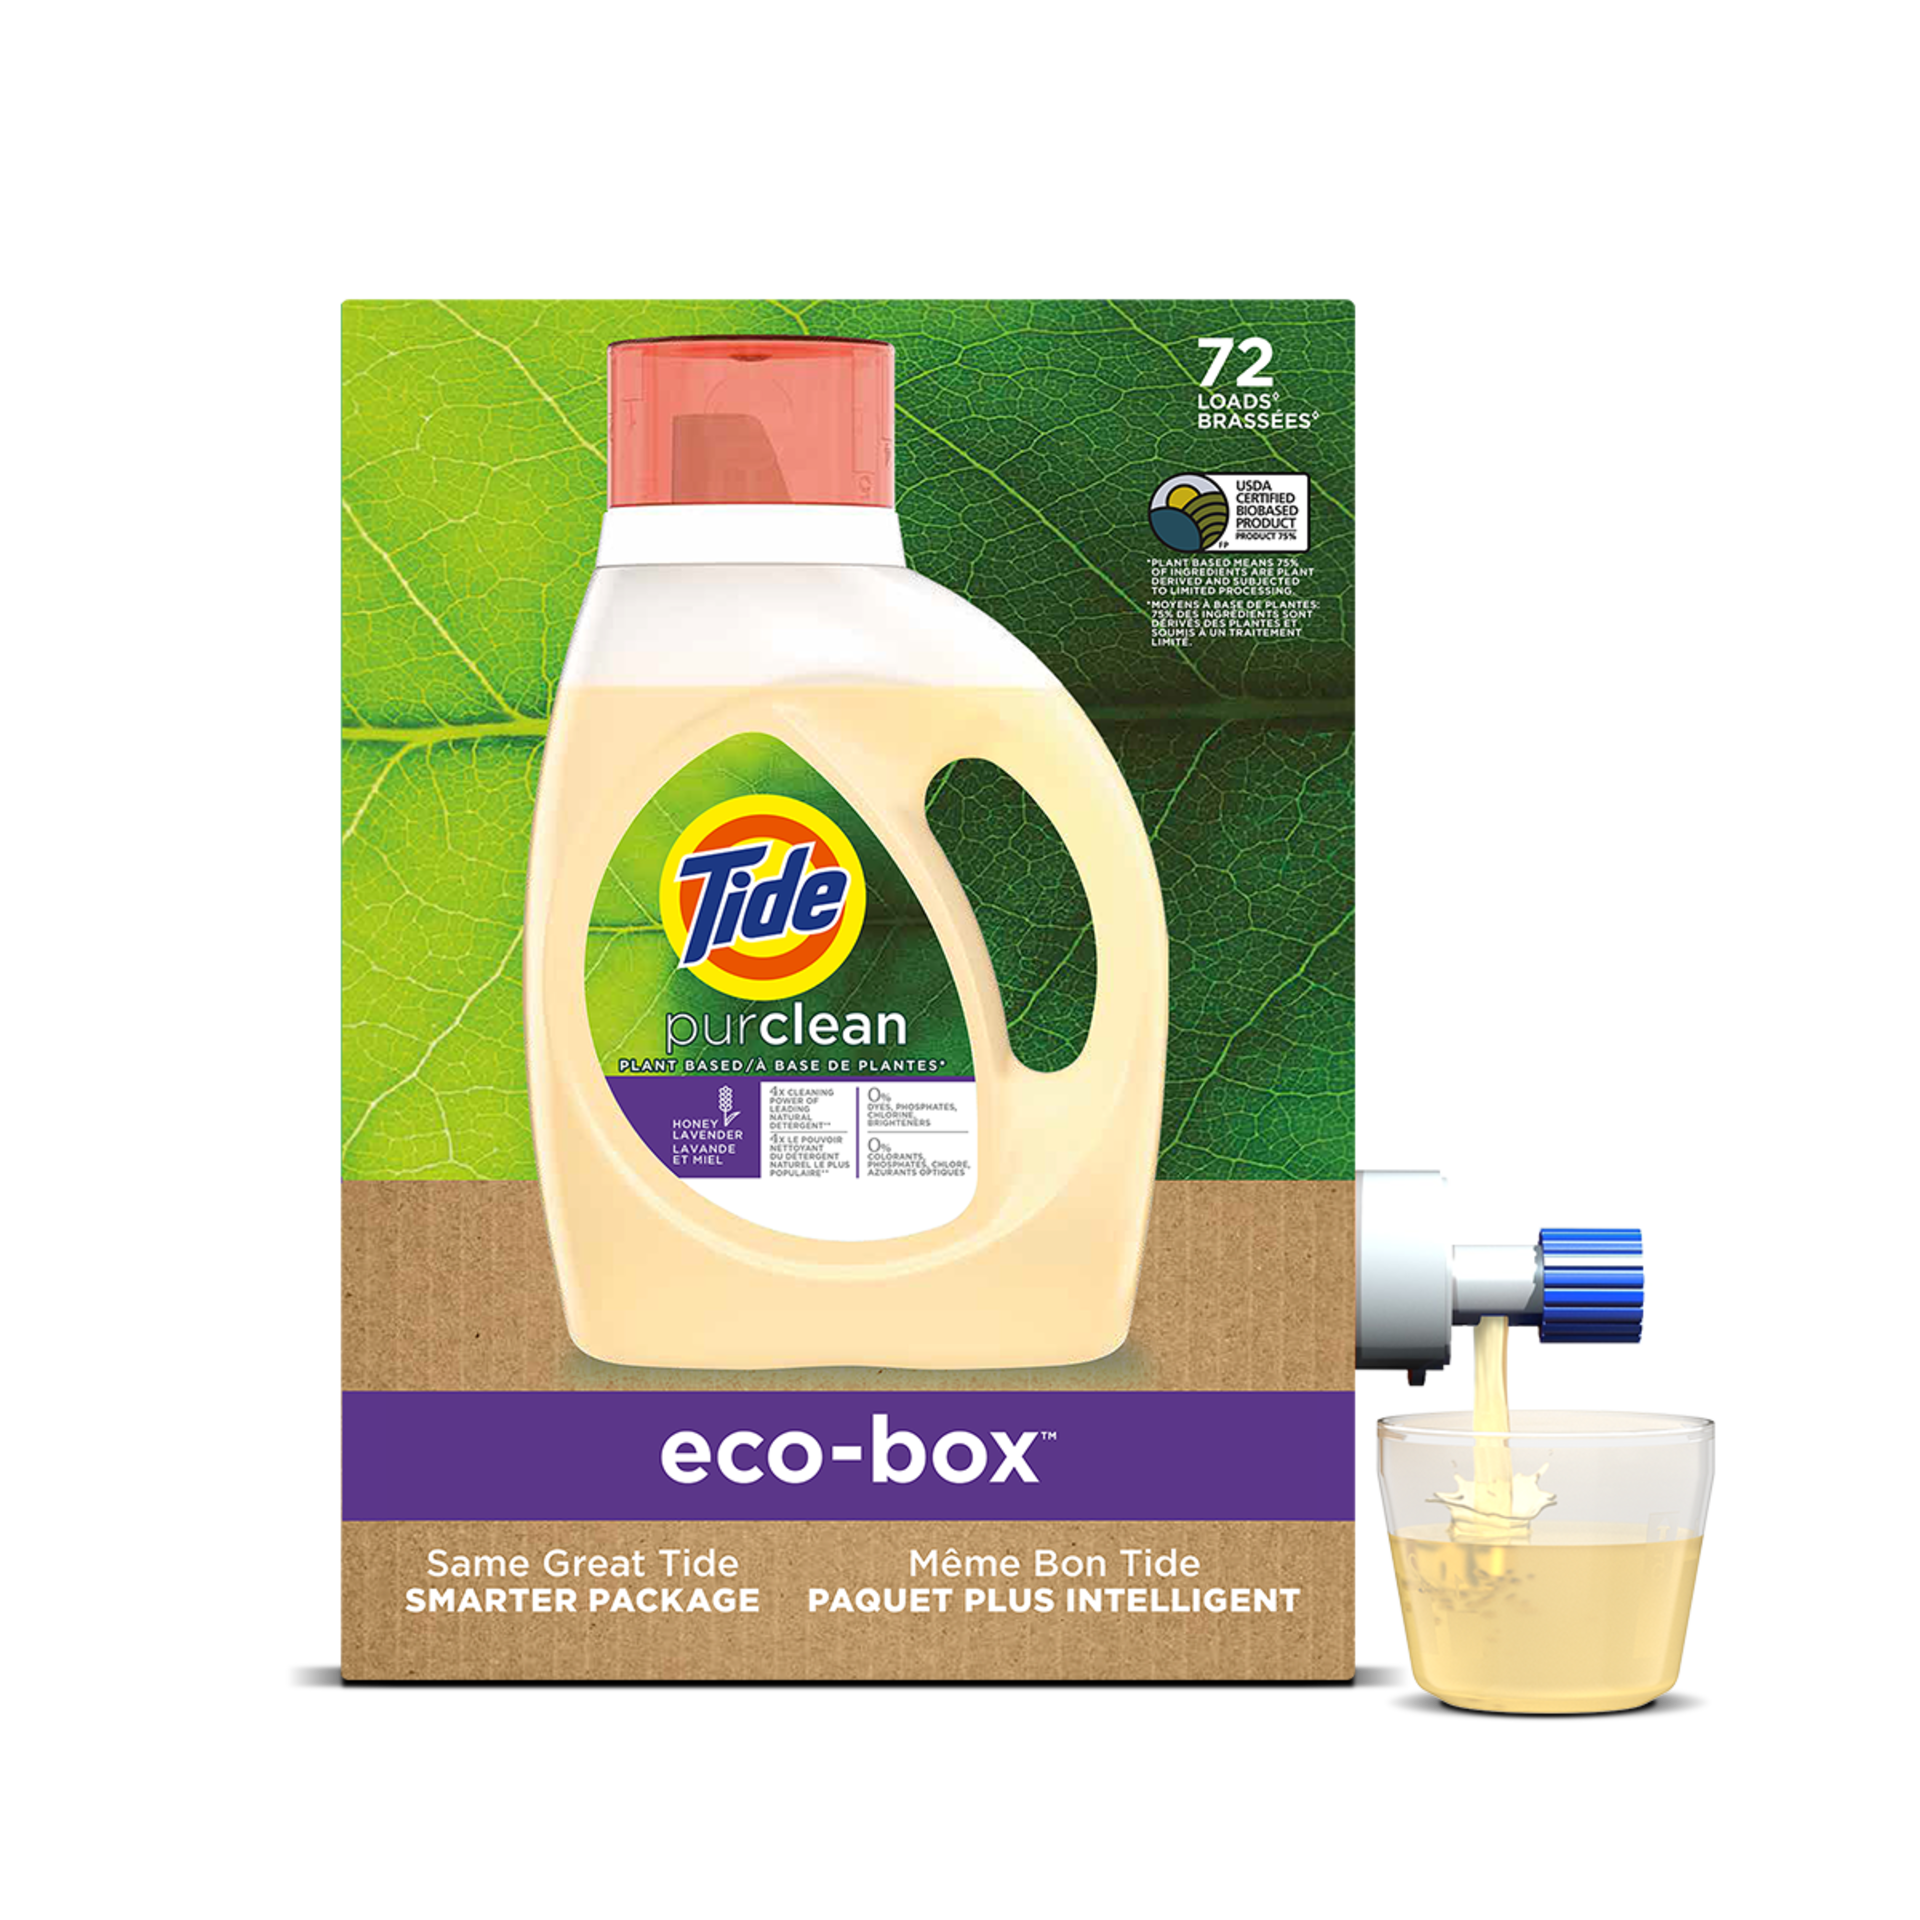 Tide Eco-Box purclean Plant-Based Liquid Laundry Detergent